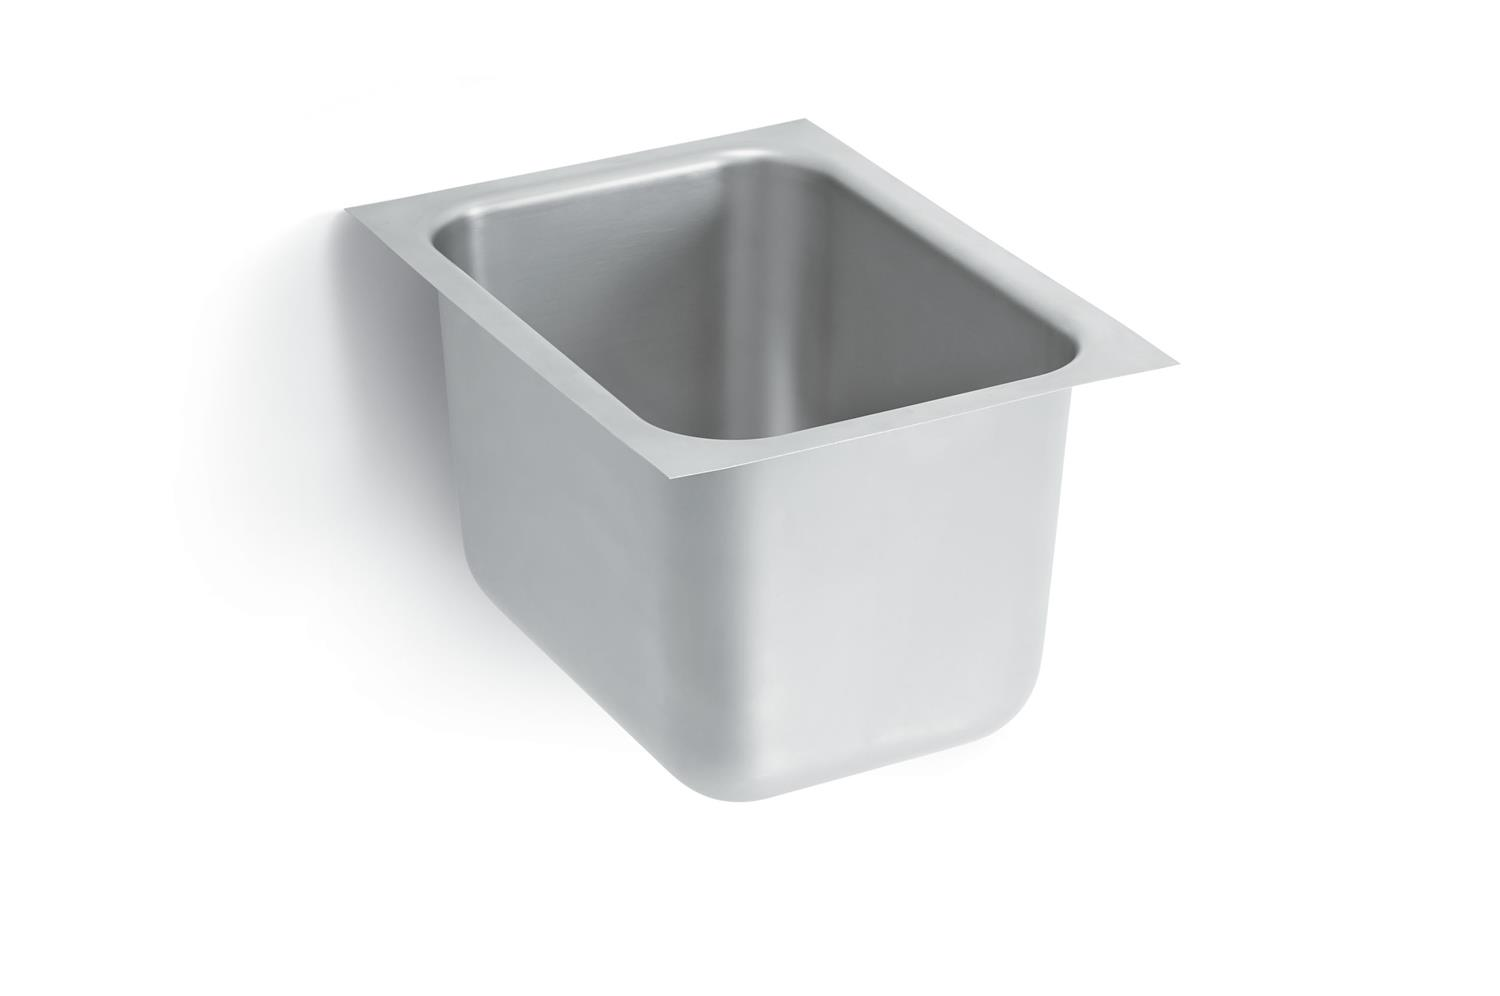 Vollrath 10101-0 Heavy Weight Single Bowl Sink, No drain